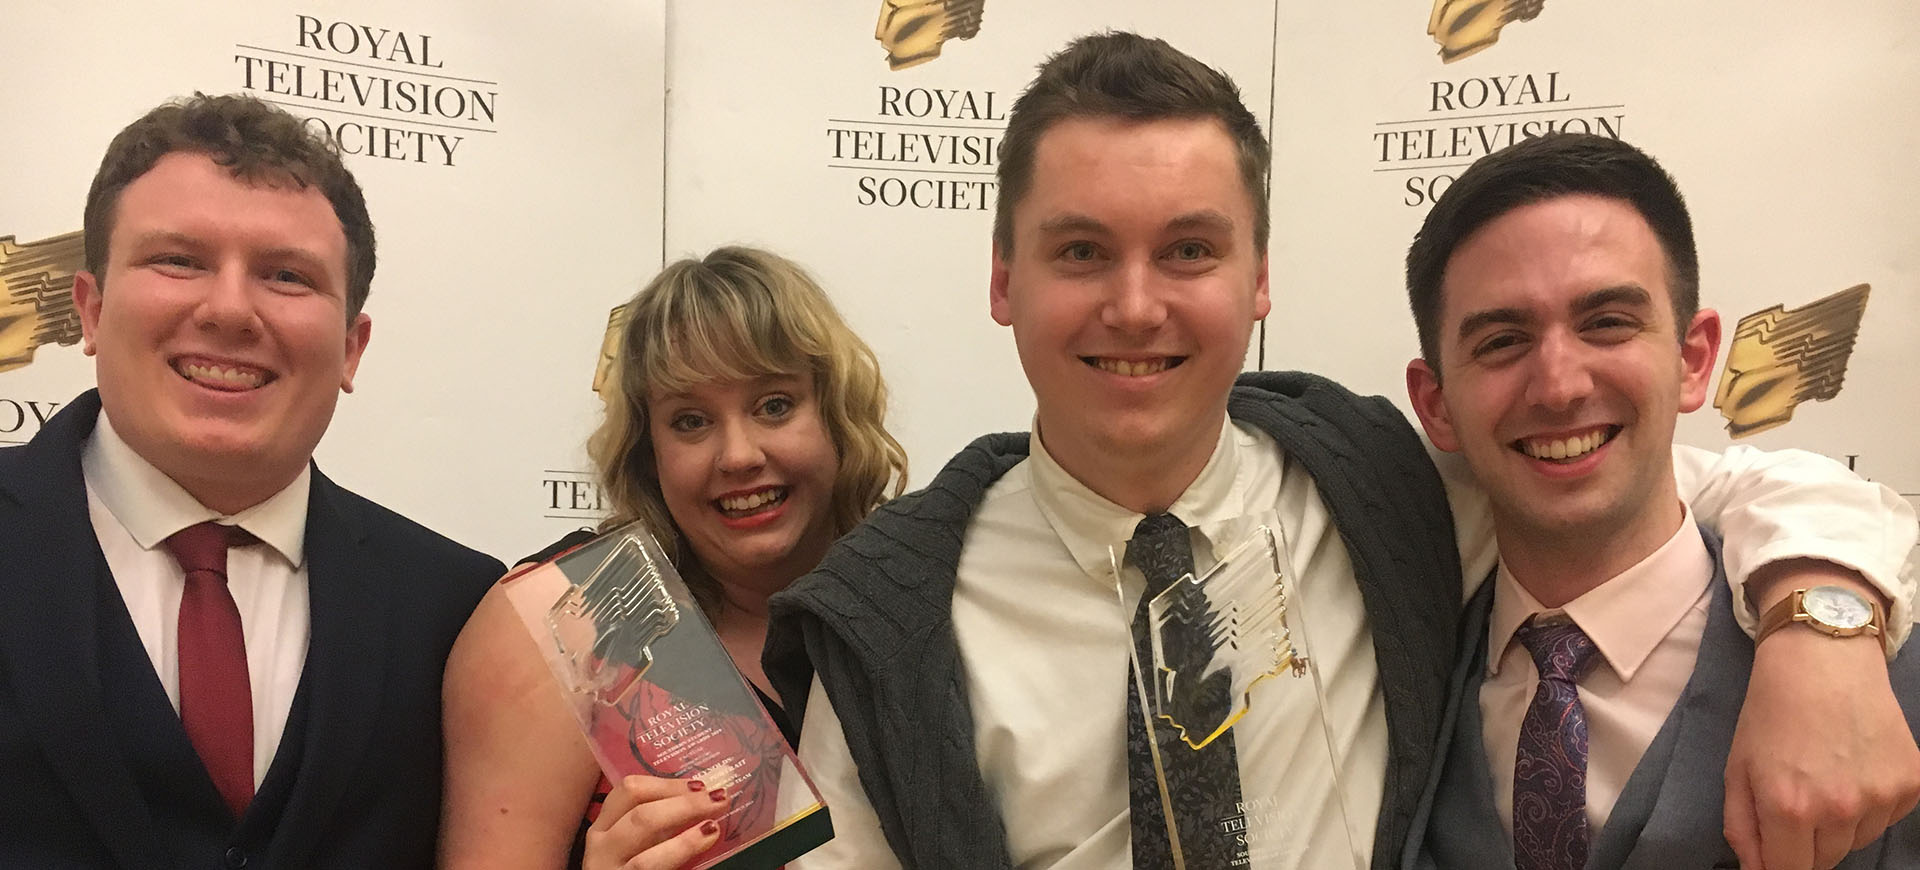 Students at the Royal Television Society (RTS) awards